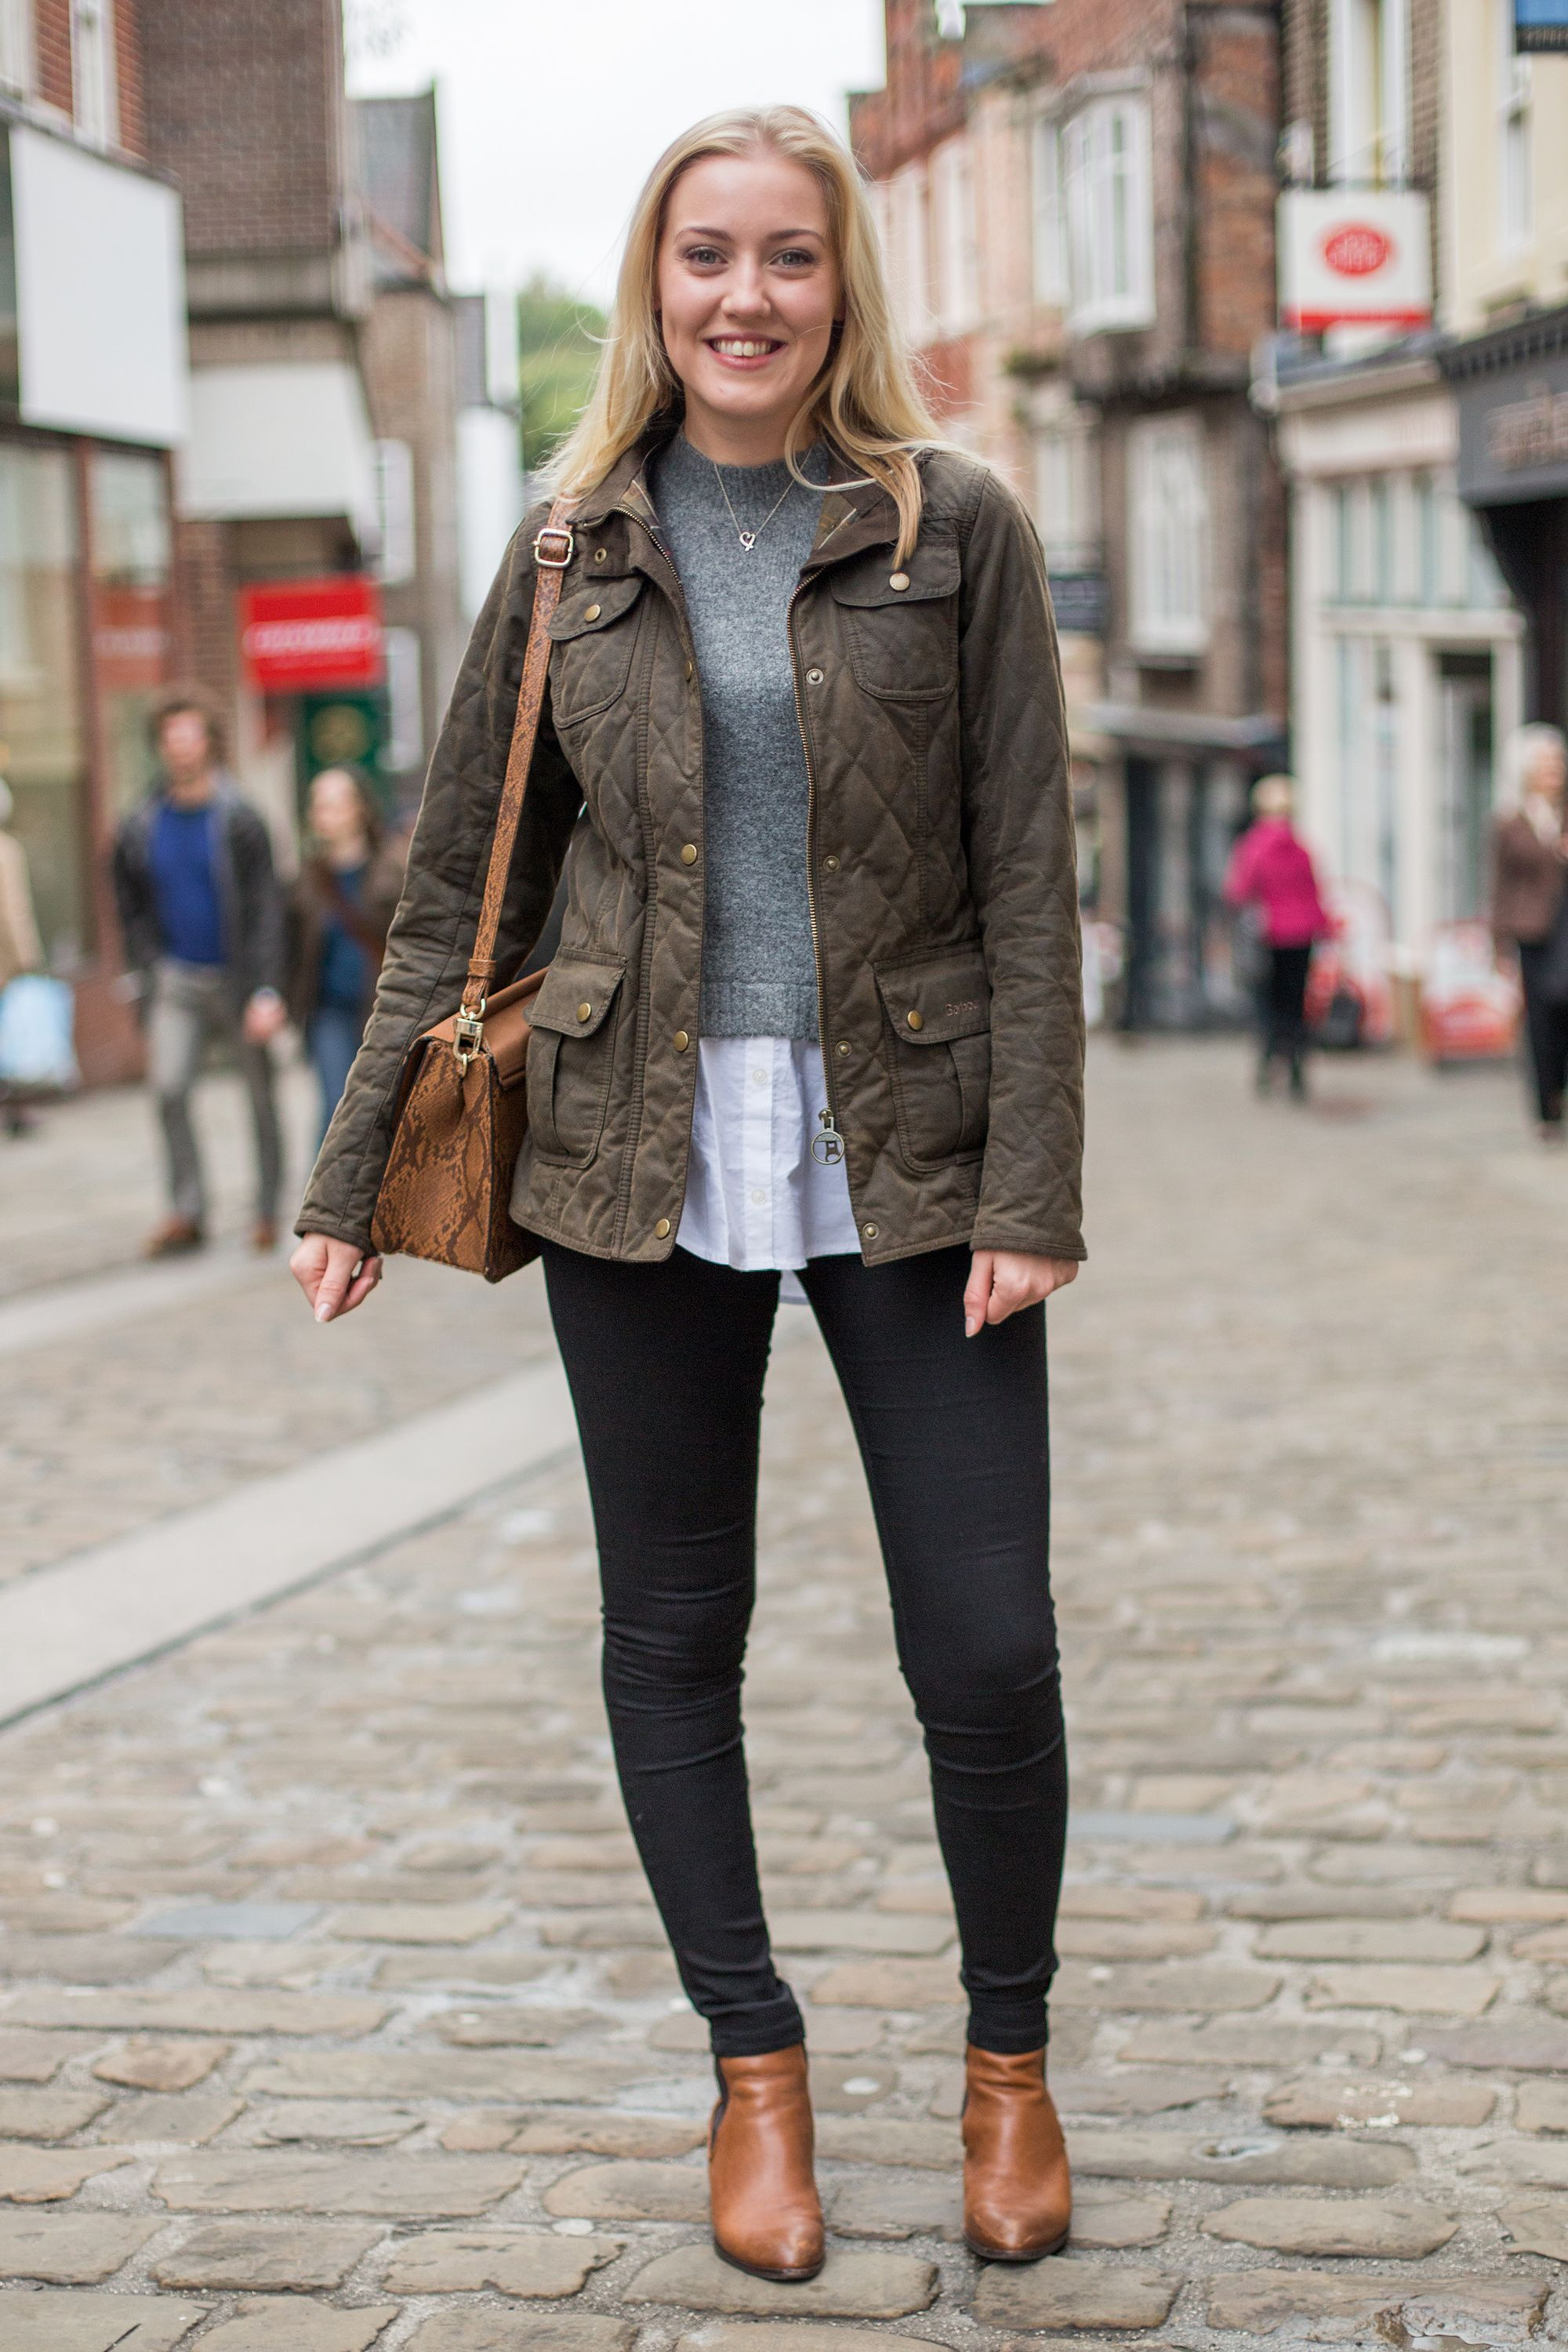 Barbour People Quilted Jacket Outfit Barbour Jacket Outfit Barbour Quilted Jacket